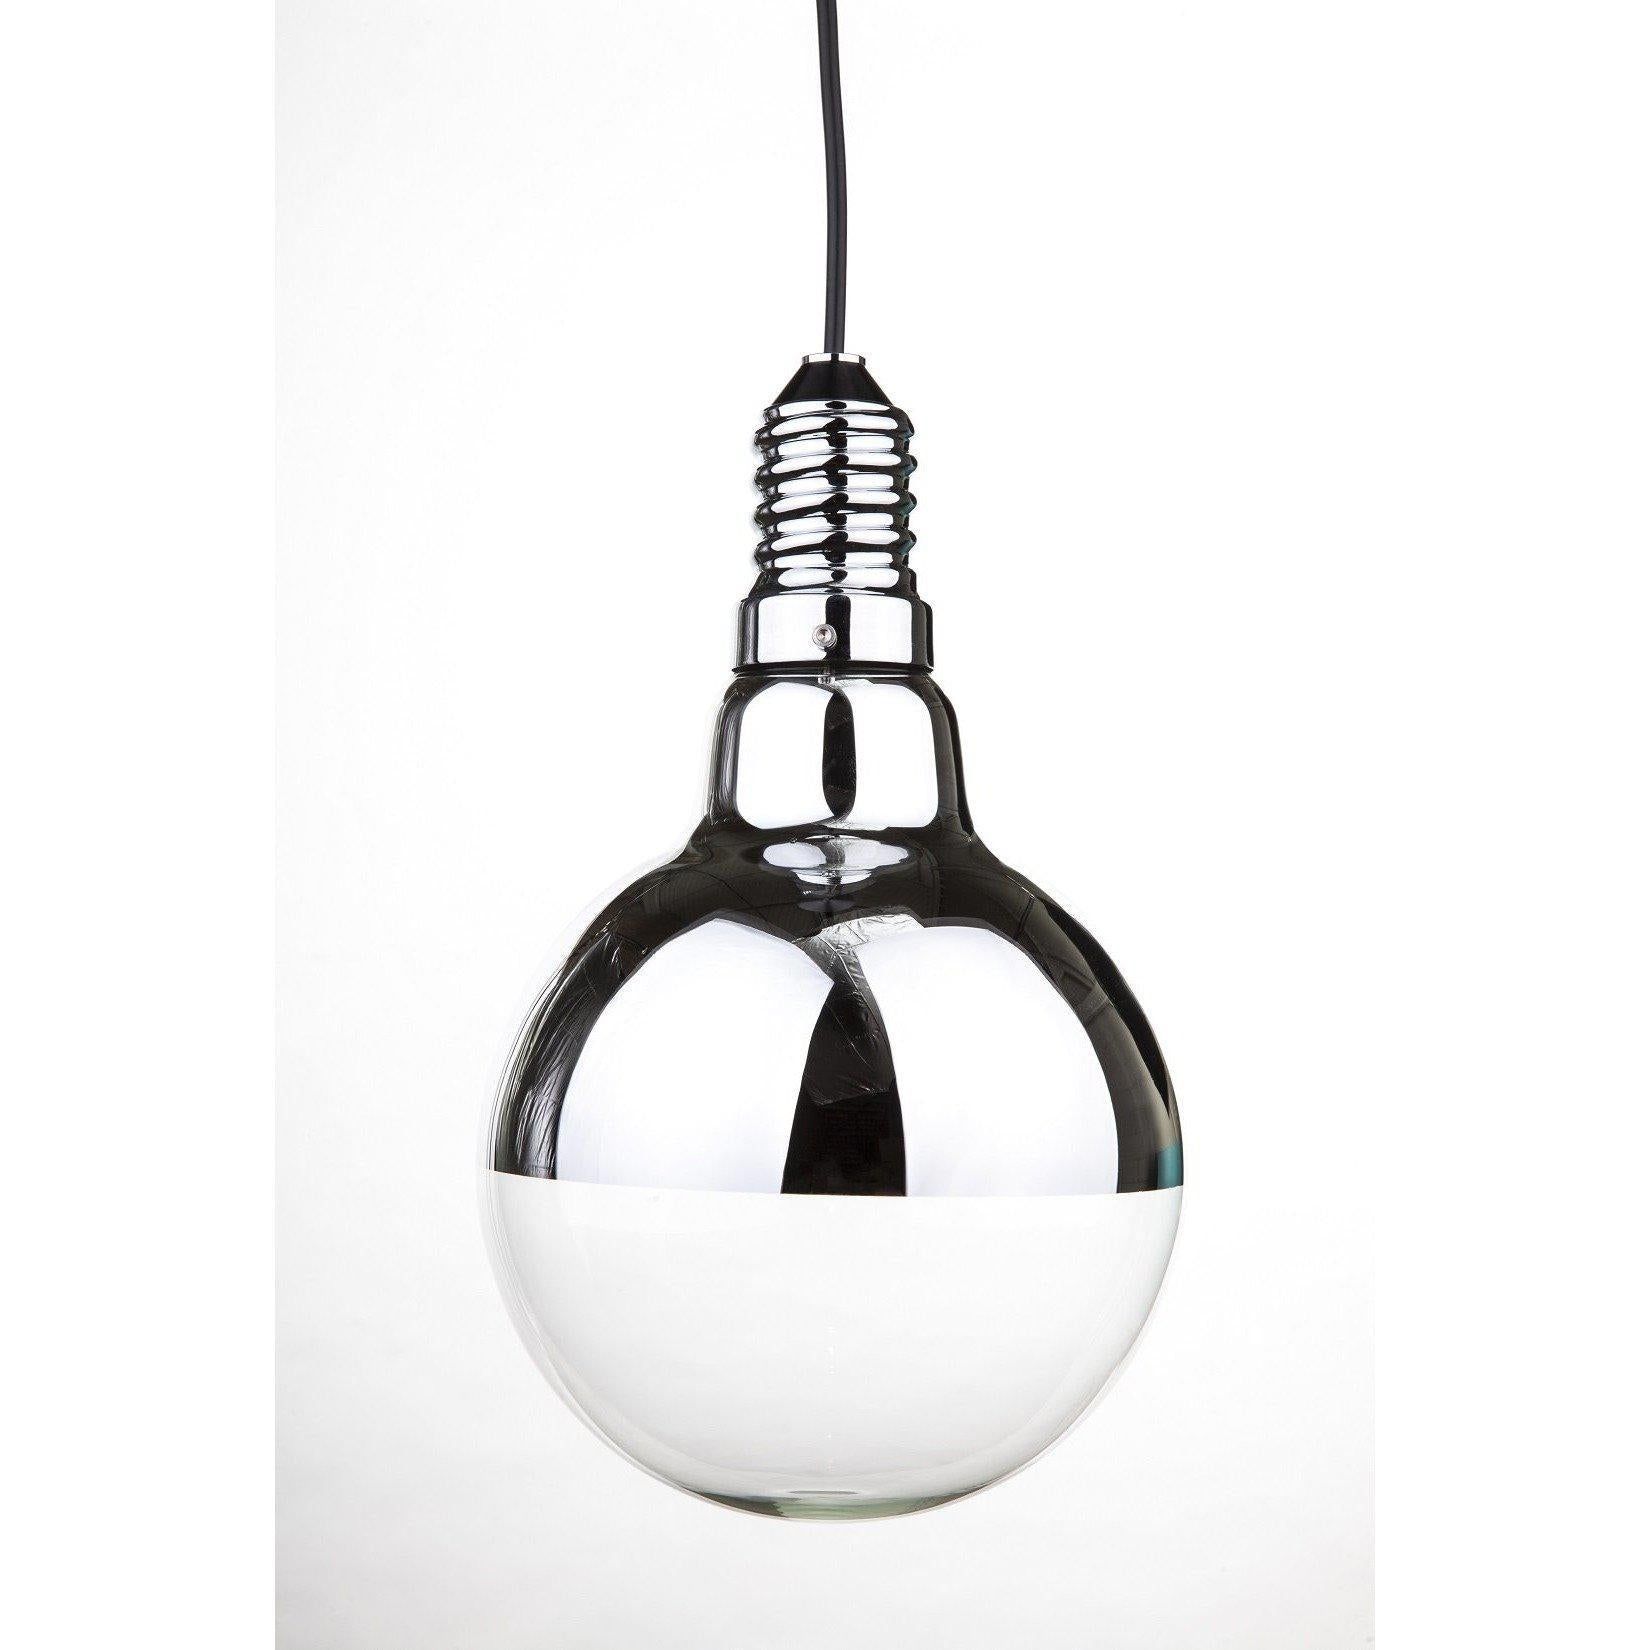 [LM370PCLR] The Big Idea Pendant Lamp SALE